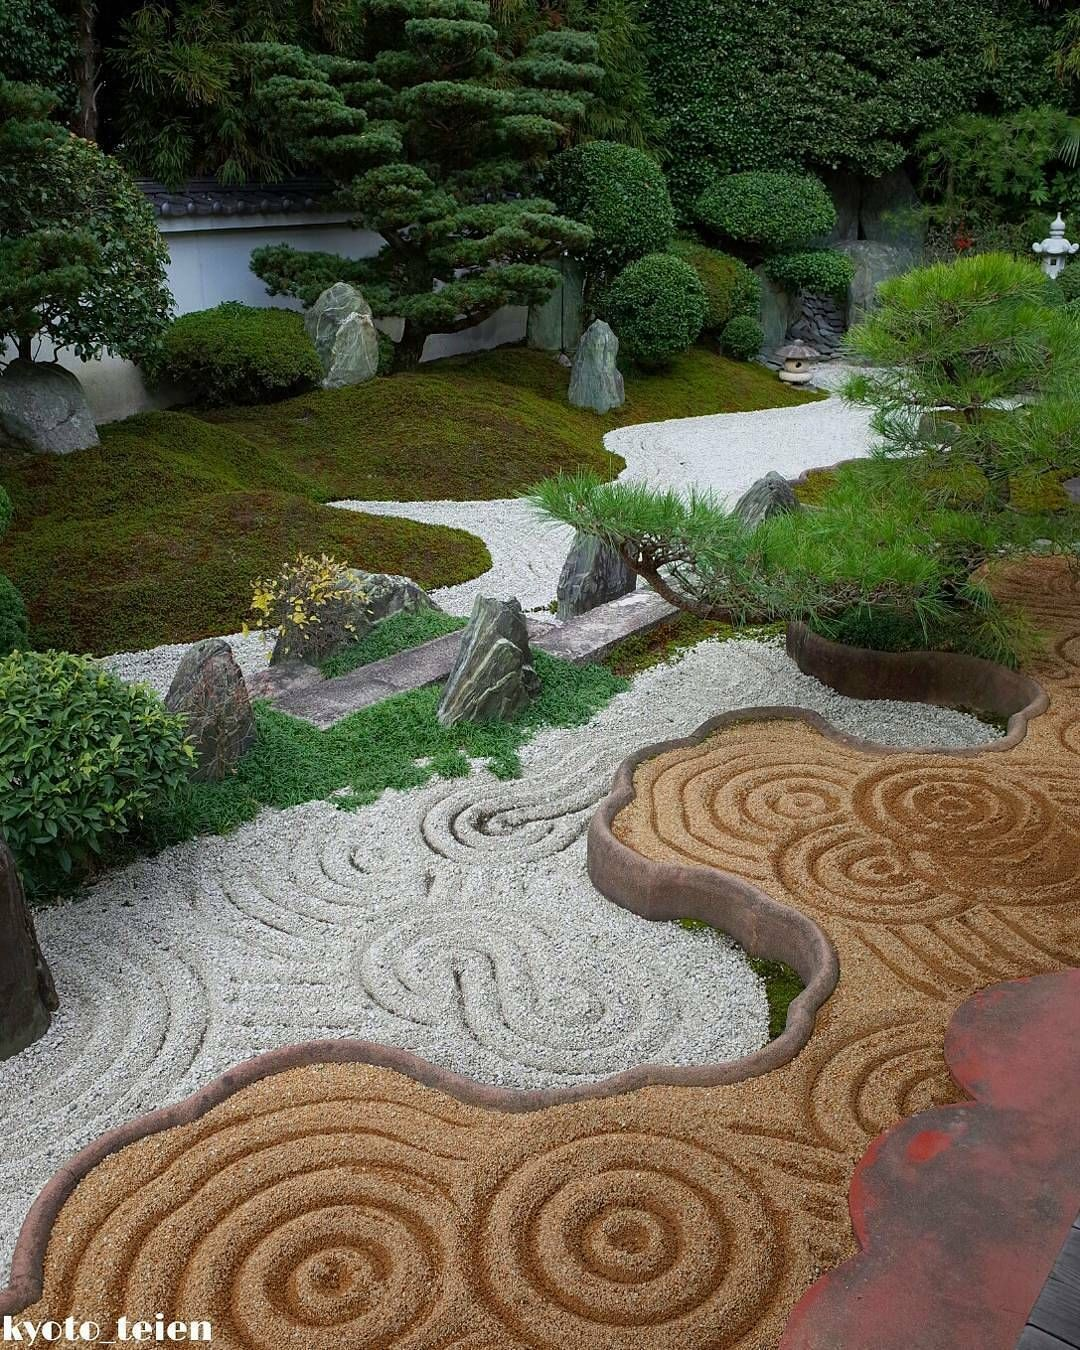 Pin by Billy Natanael on Landscaping Japan garden, Zen